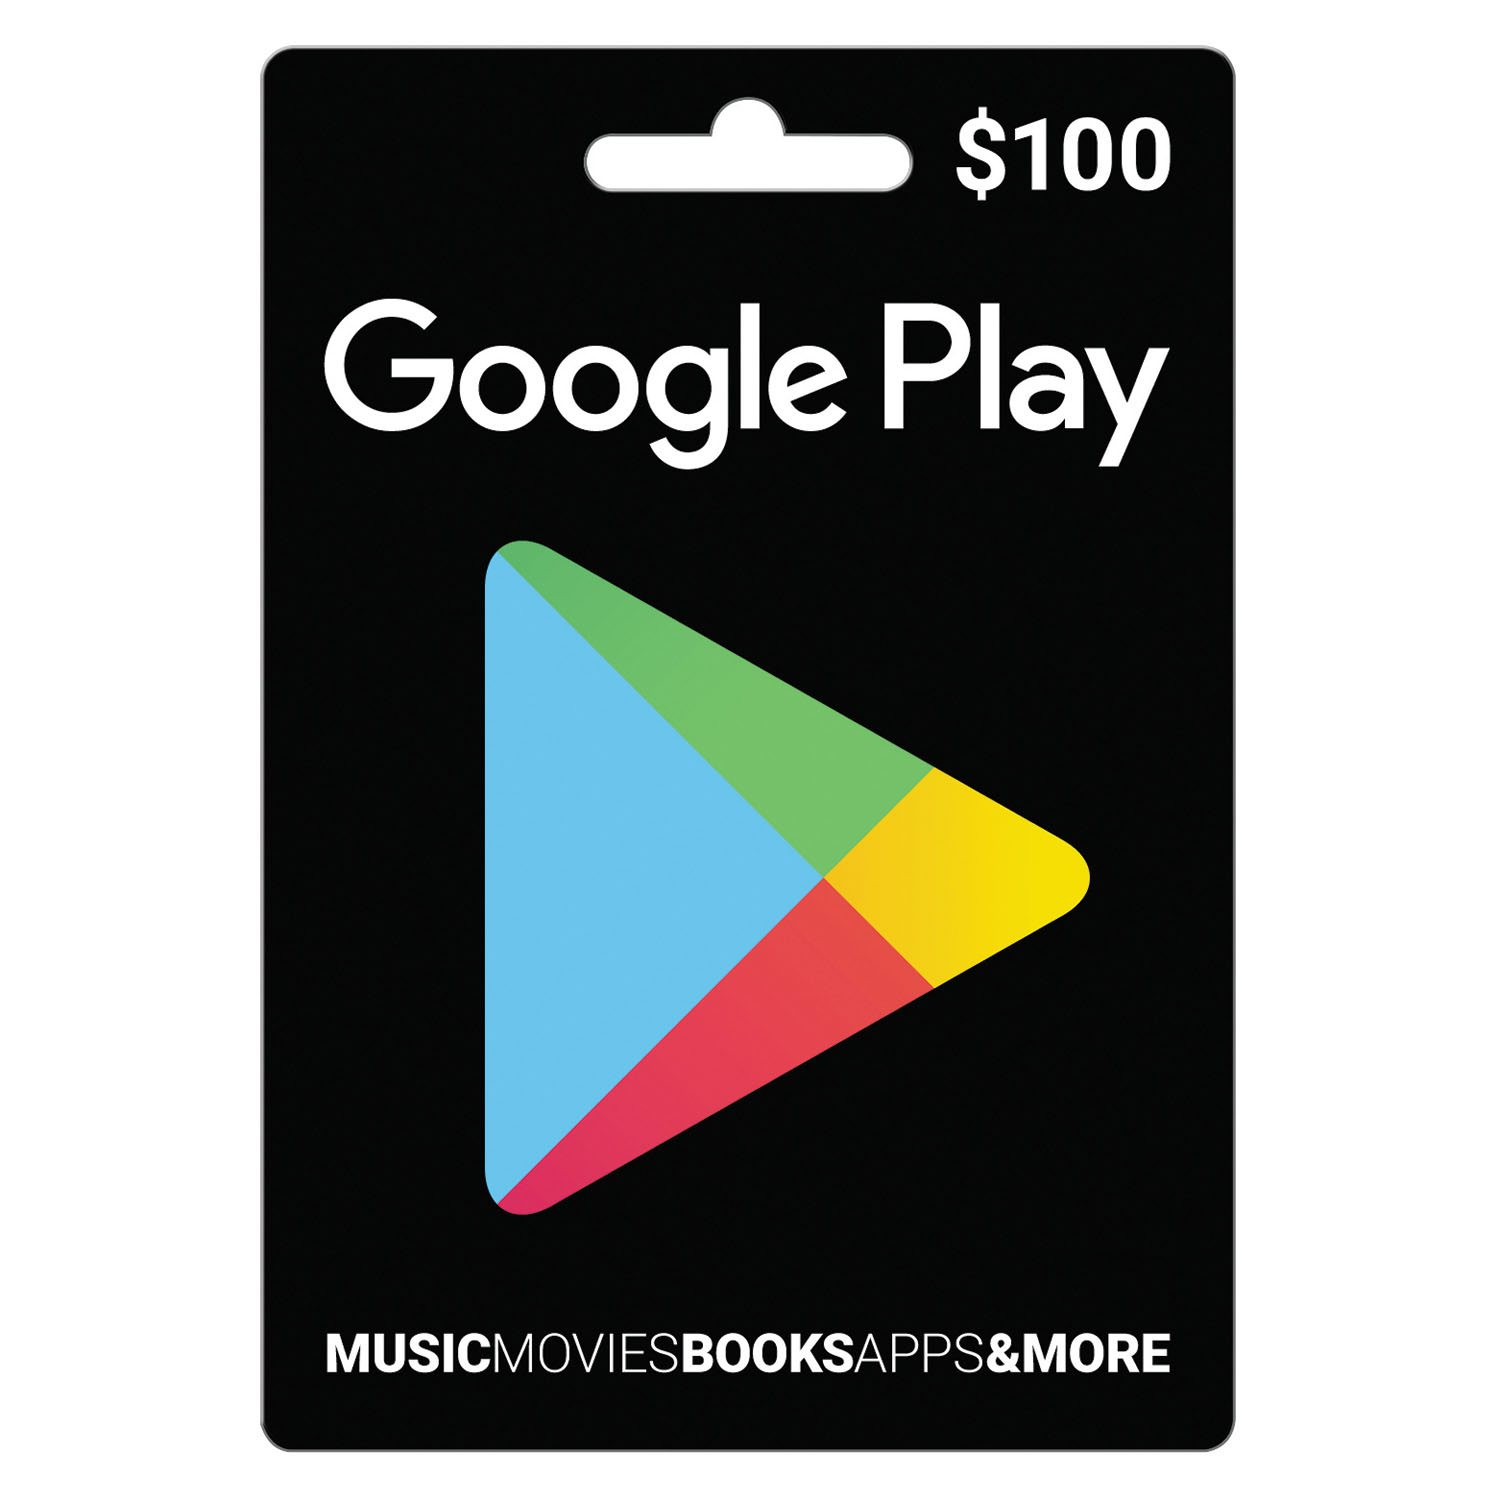 Gift Card Numbers For Google Play Google Play $100 Gift Card